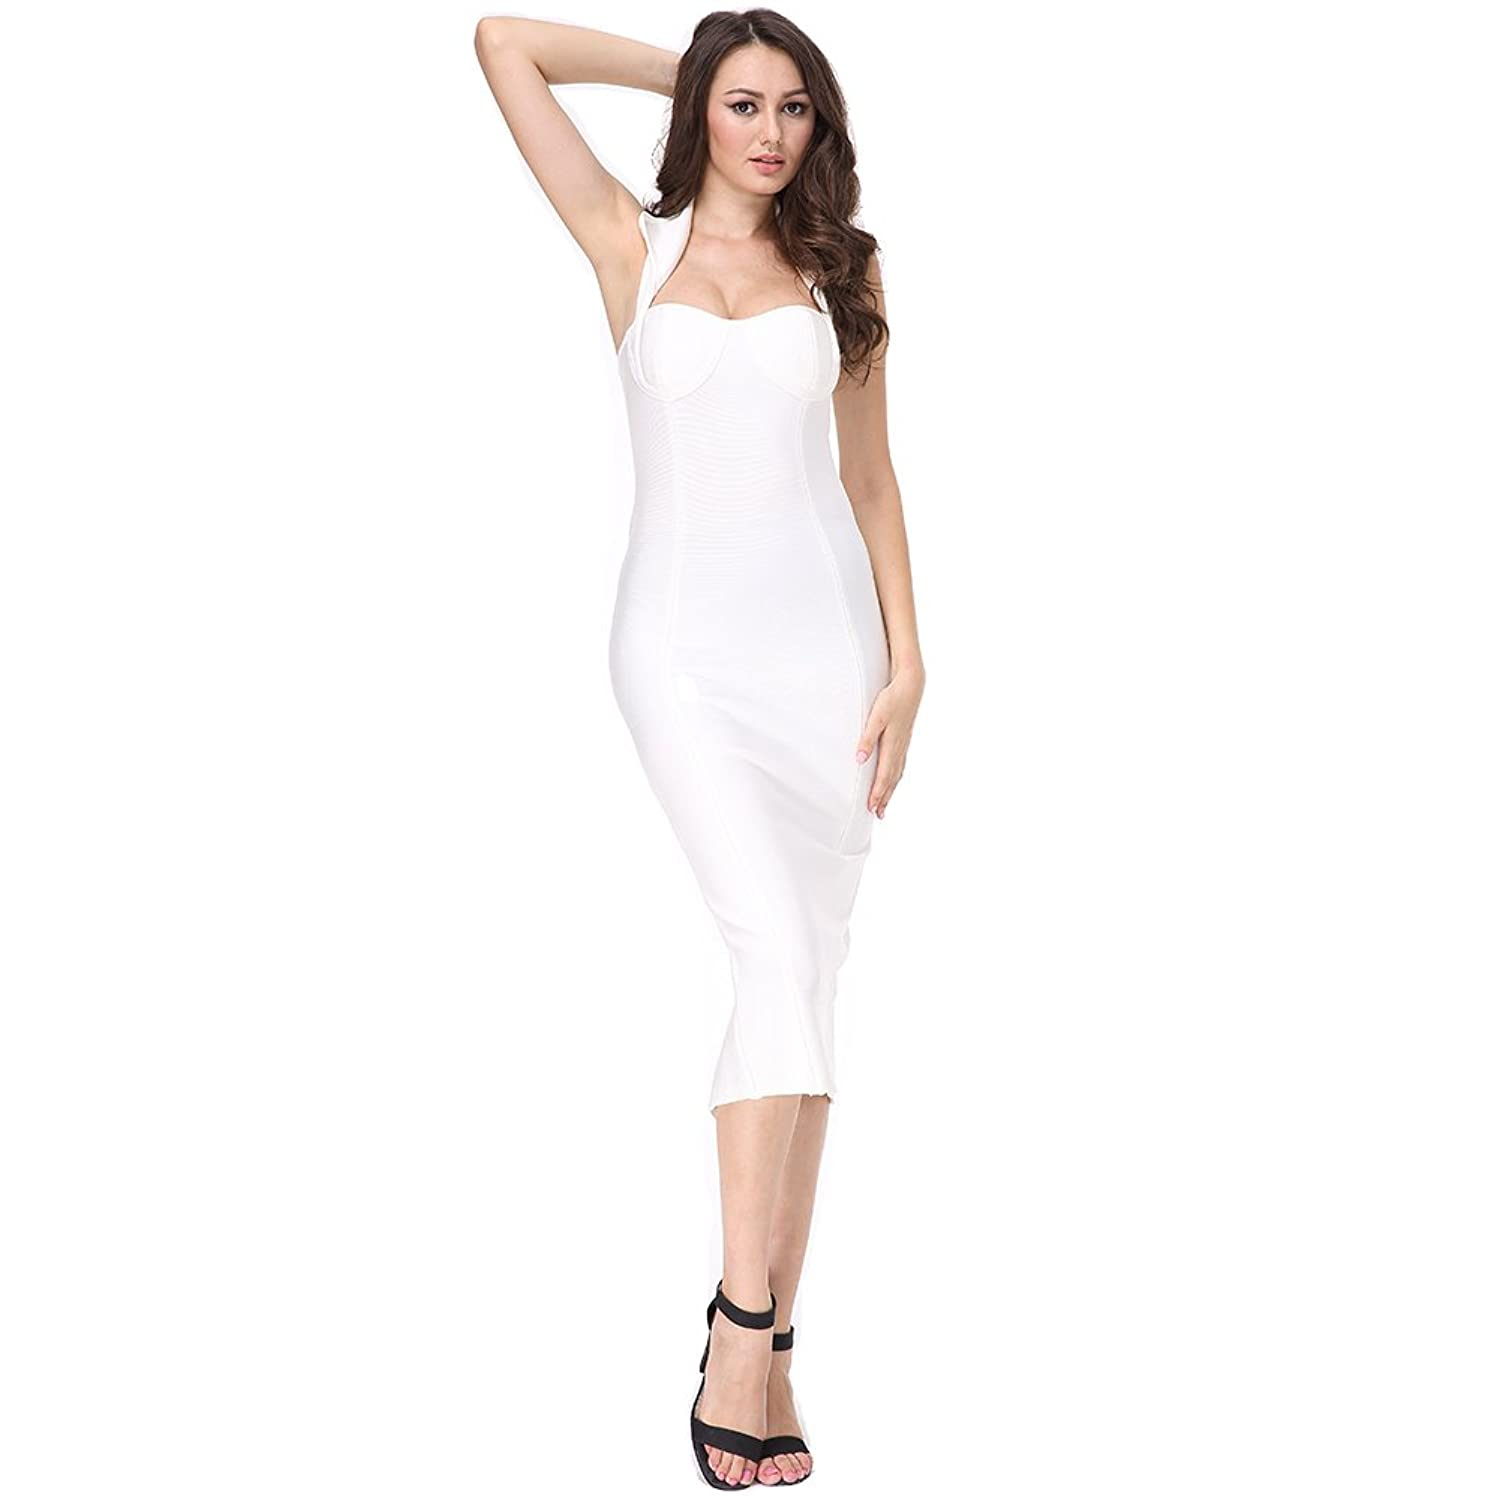 Ladyce Bandage Dress Rayon Off The Shoulder White Bodycon Evening Party Dress